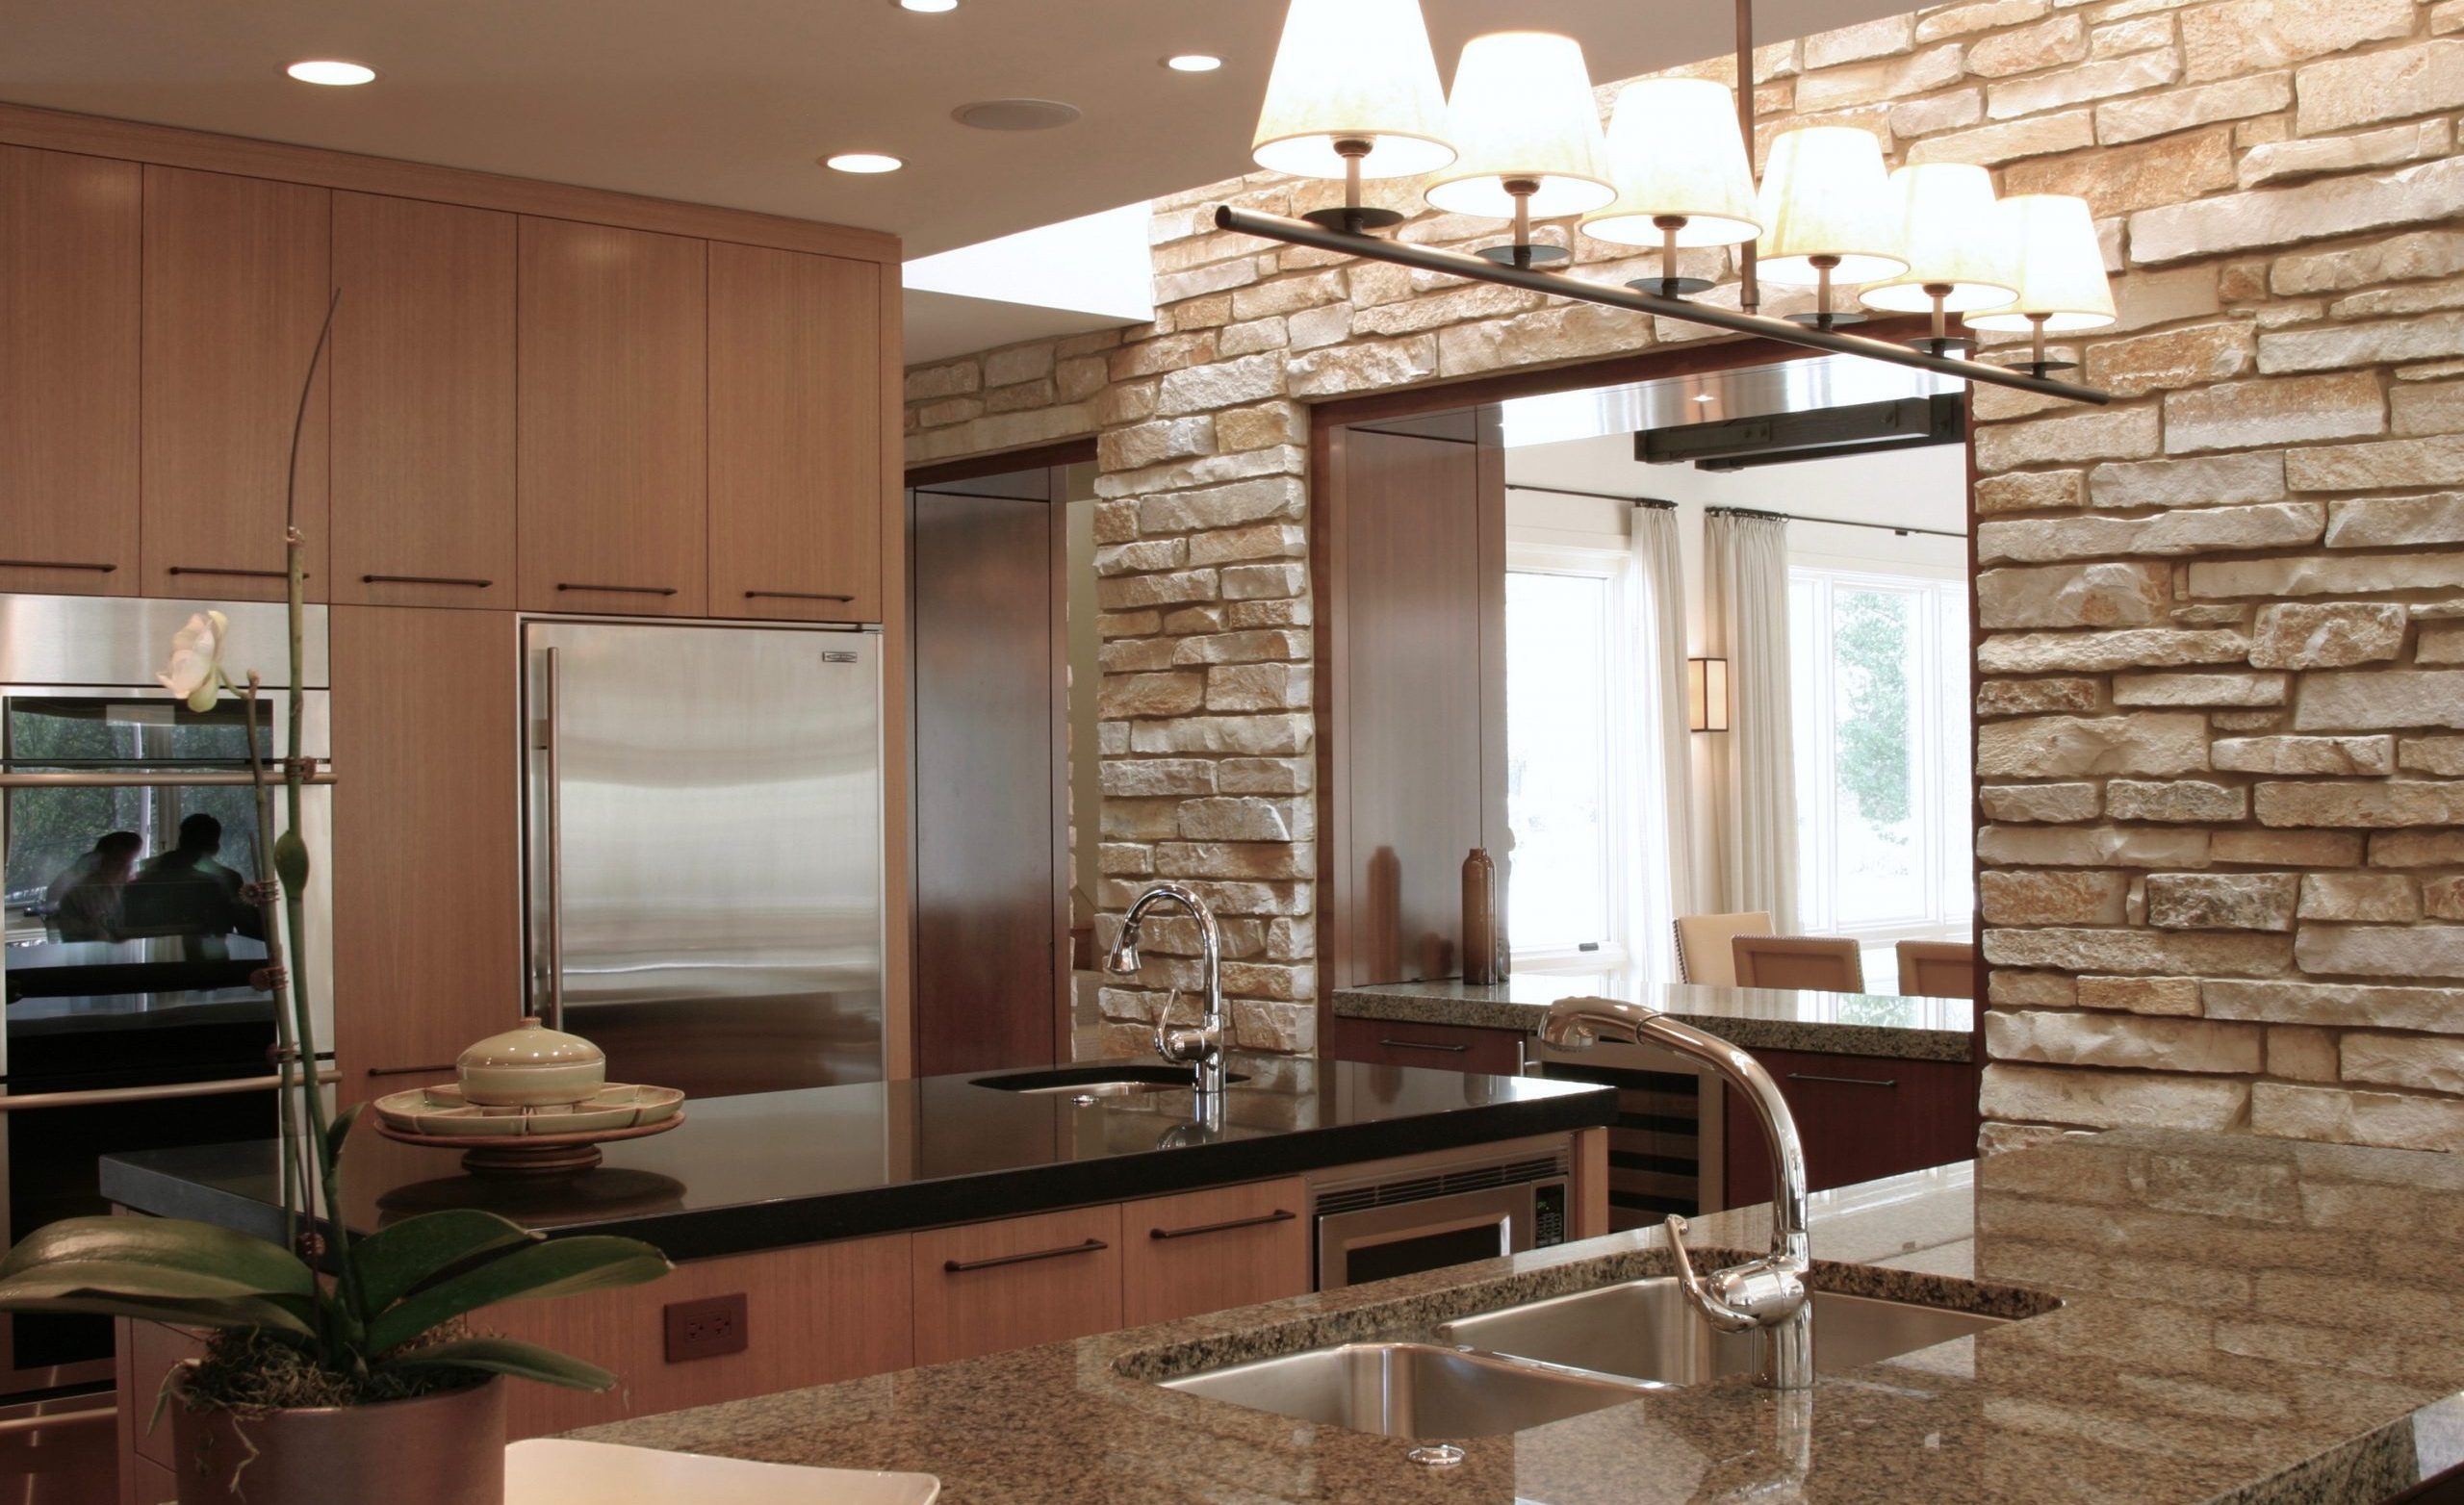 Contemporary Lodge Kitchen with View to Dining